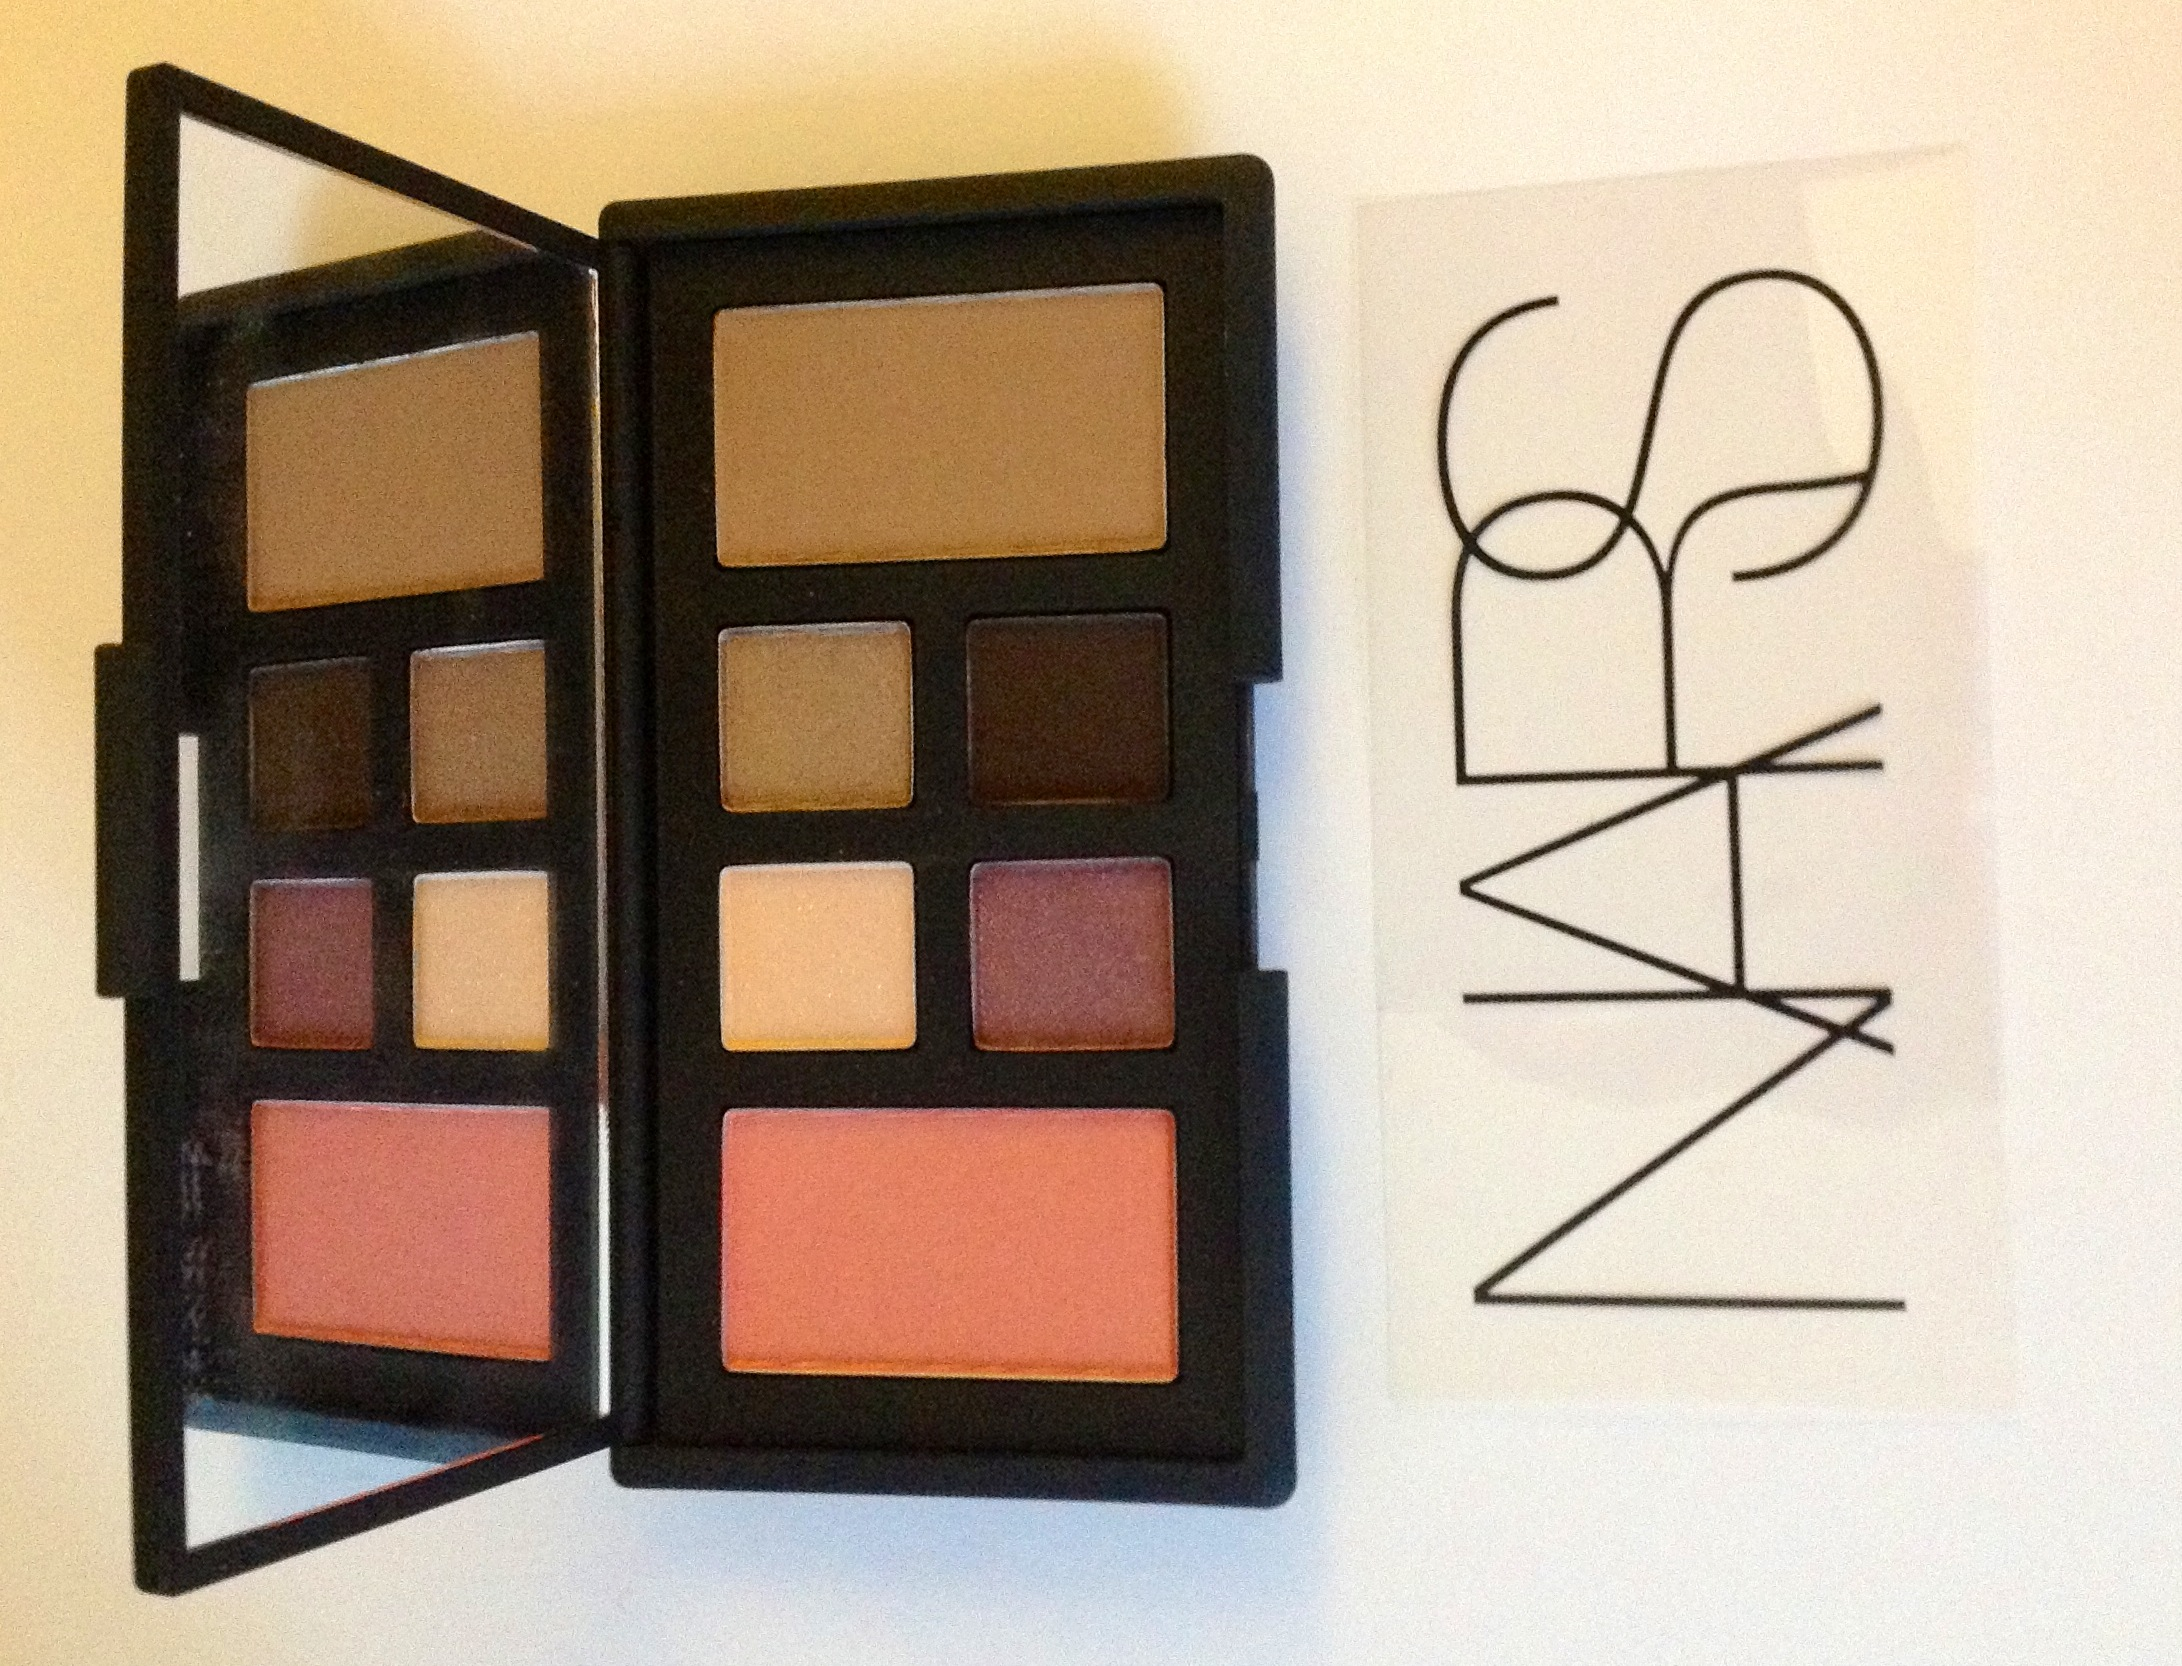 NARS PALETTE REVIEW